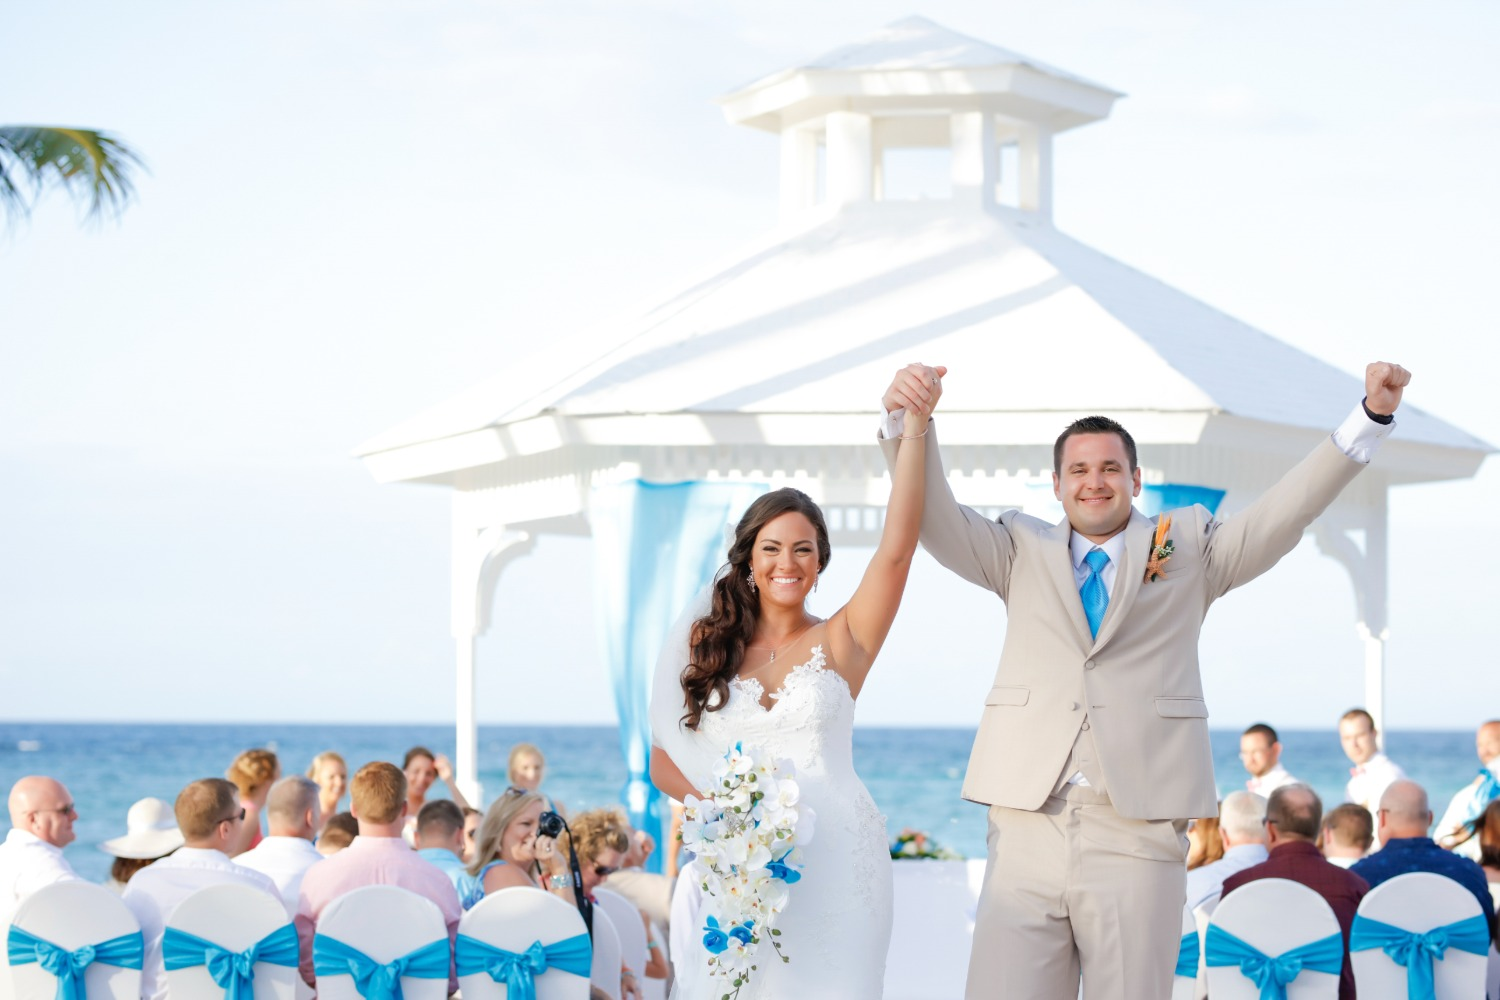 Say Yes to Destination Wedding in Punta Cana Via Apple Vacations